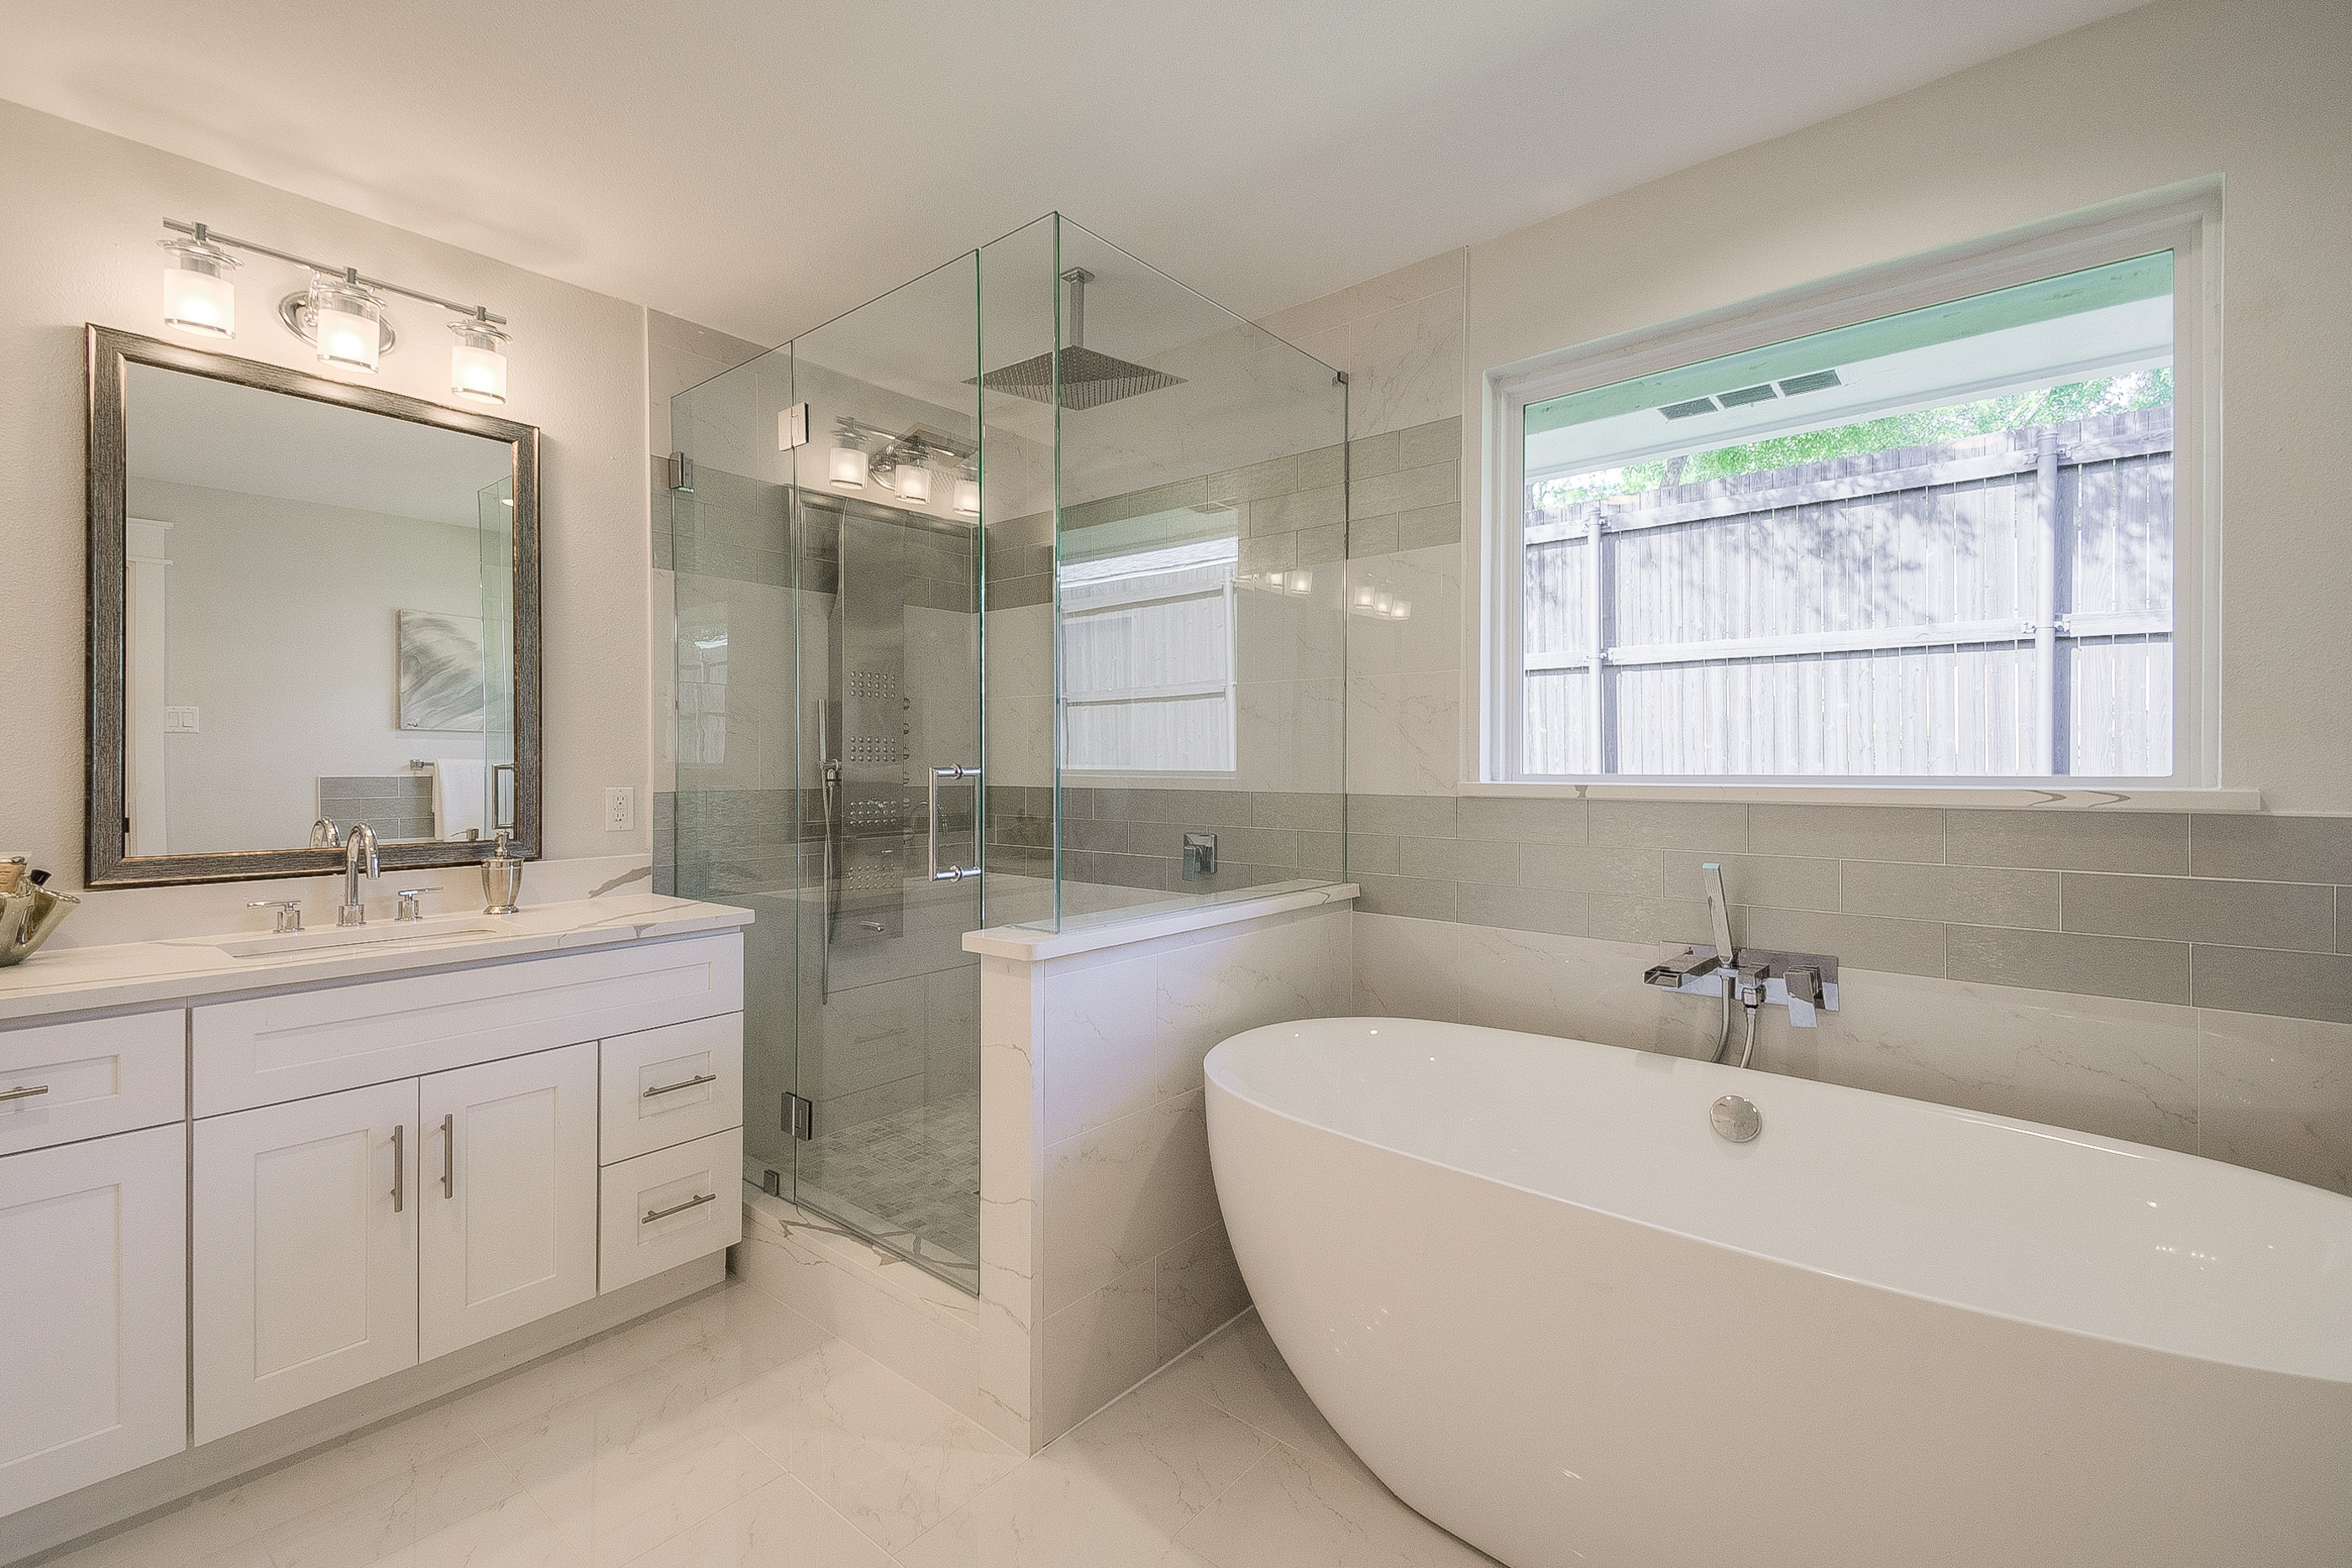 23 - master bathroom.jpg